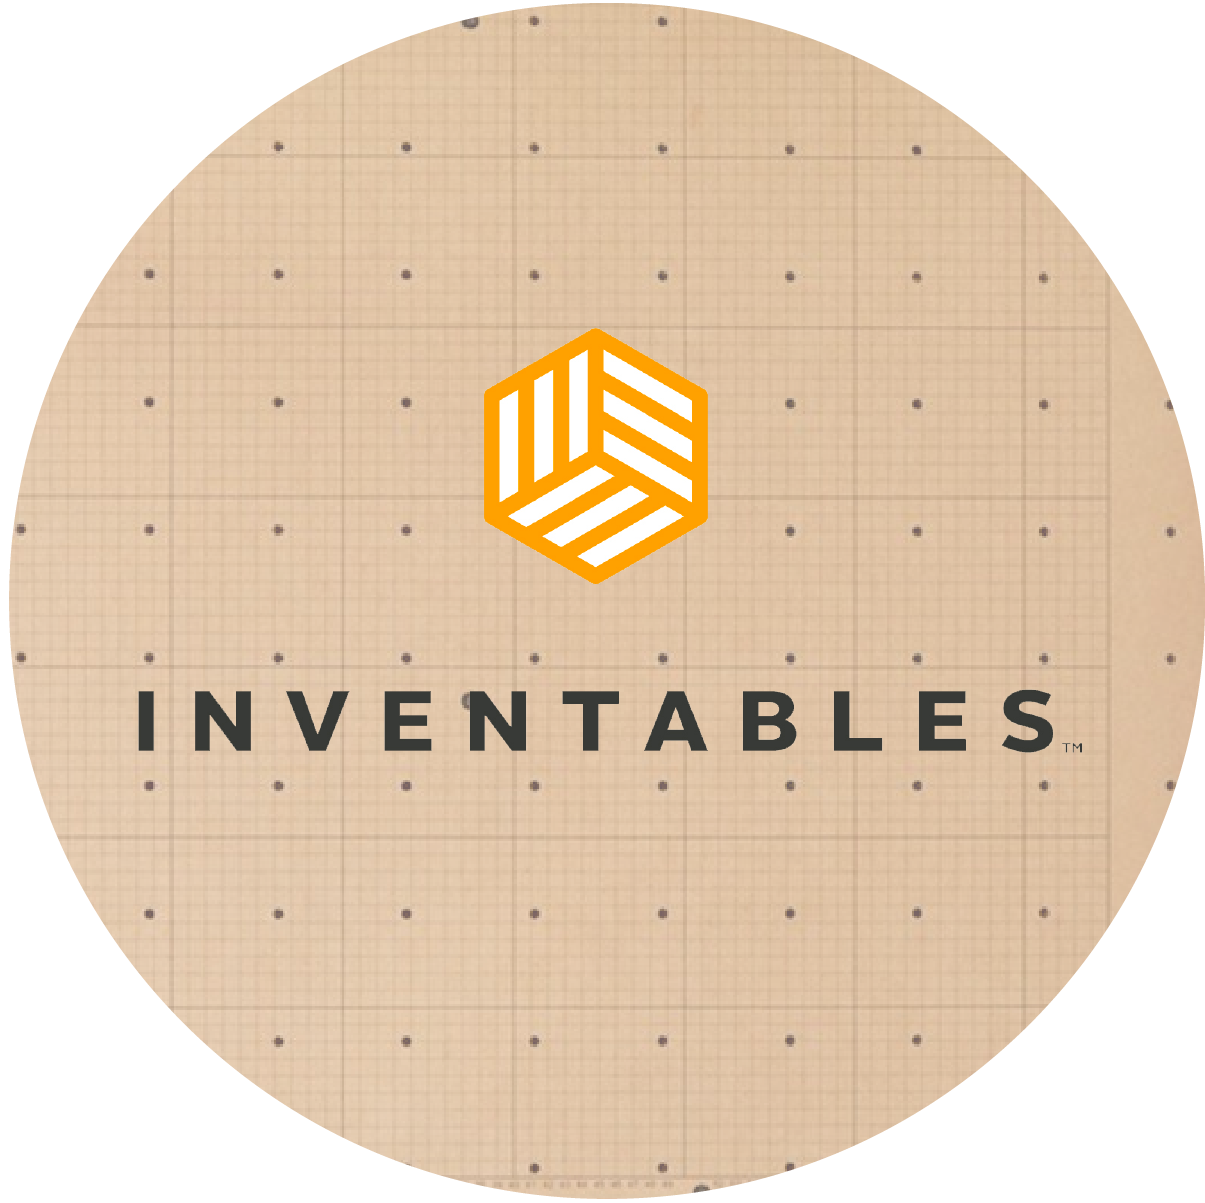 Inventables.png